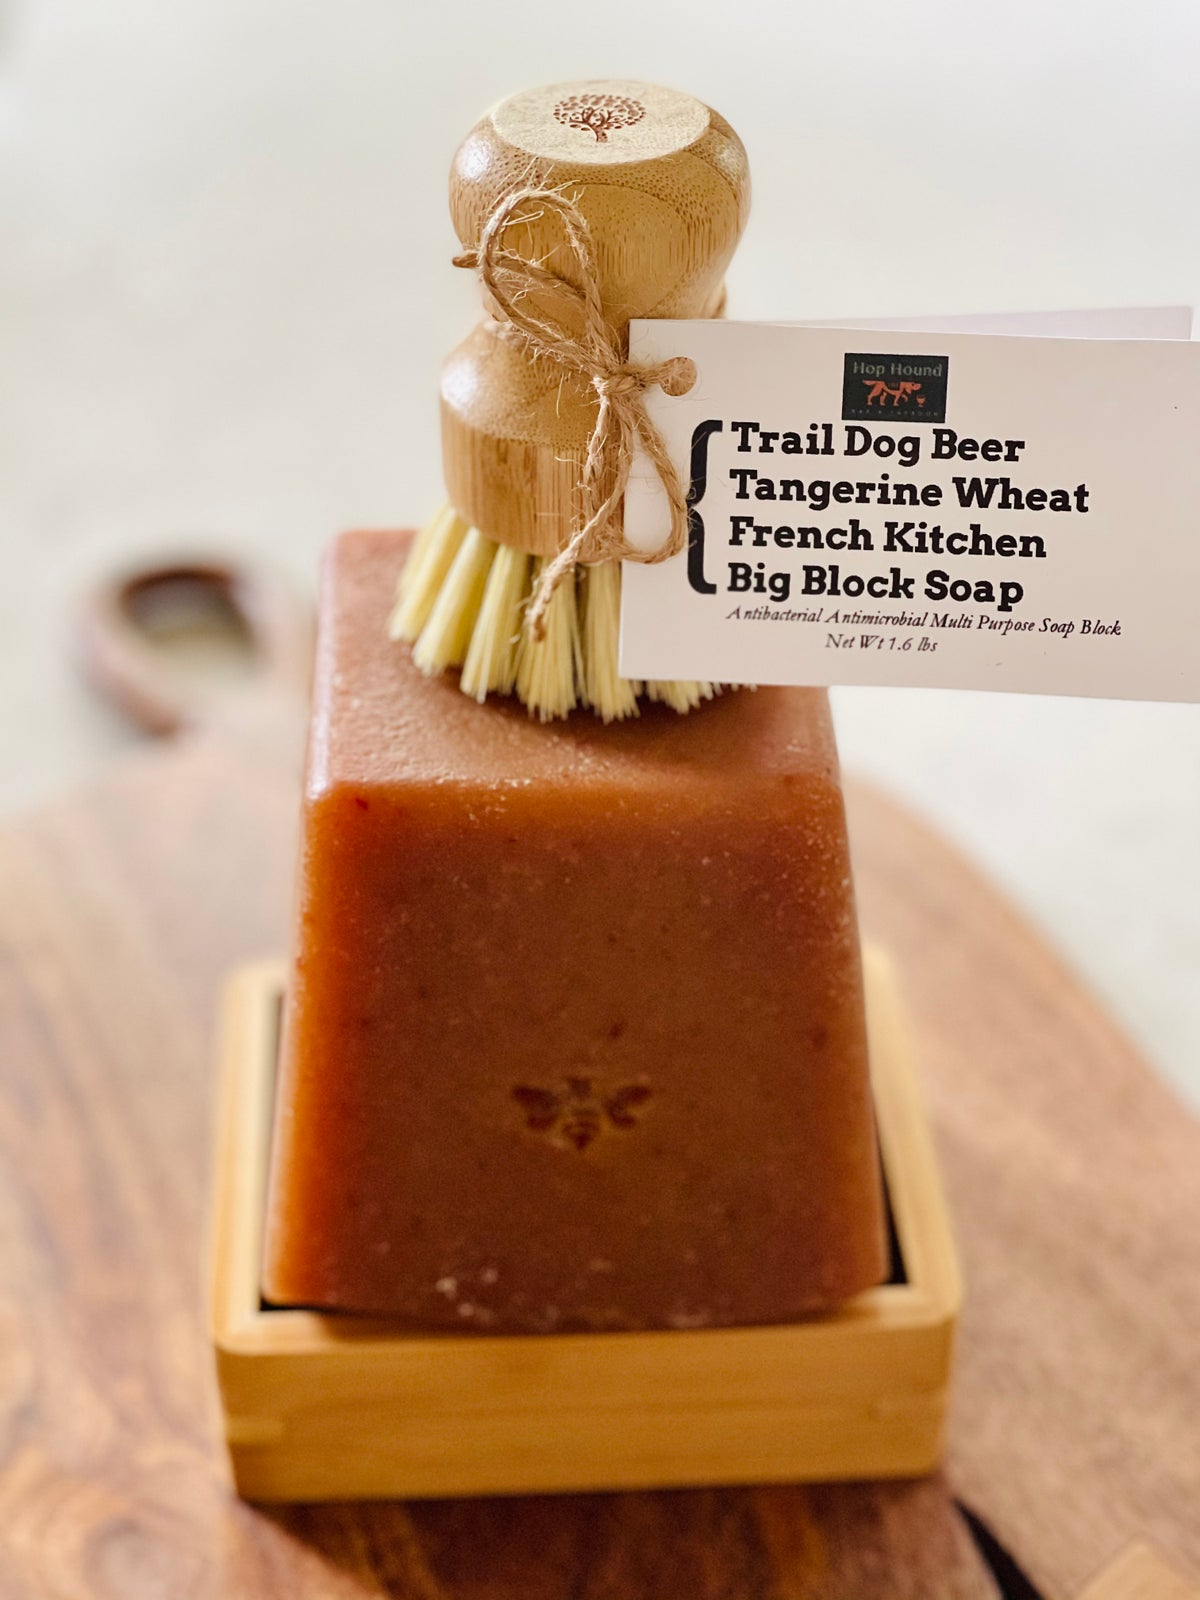 Trail Dog Beer Tangerine Wheat French Kitchen Big Block Soap